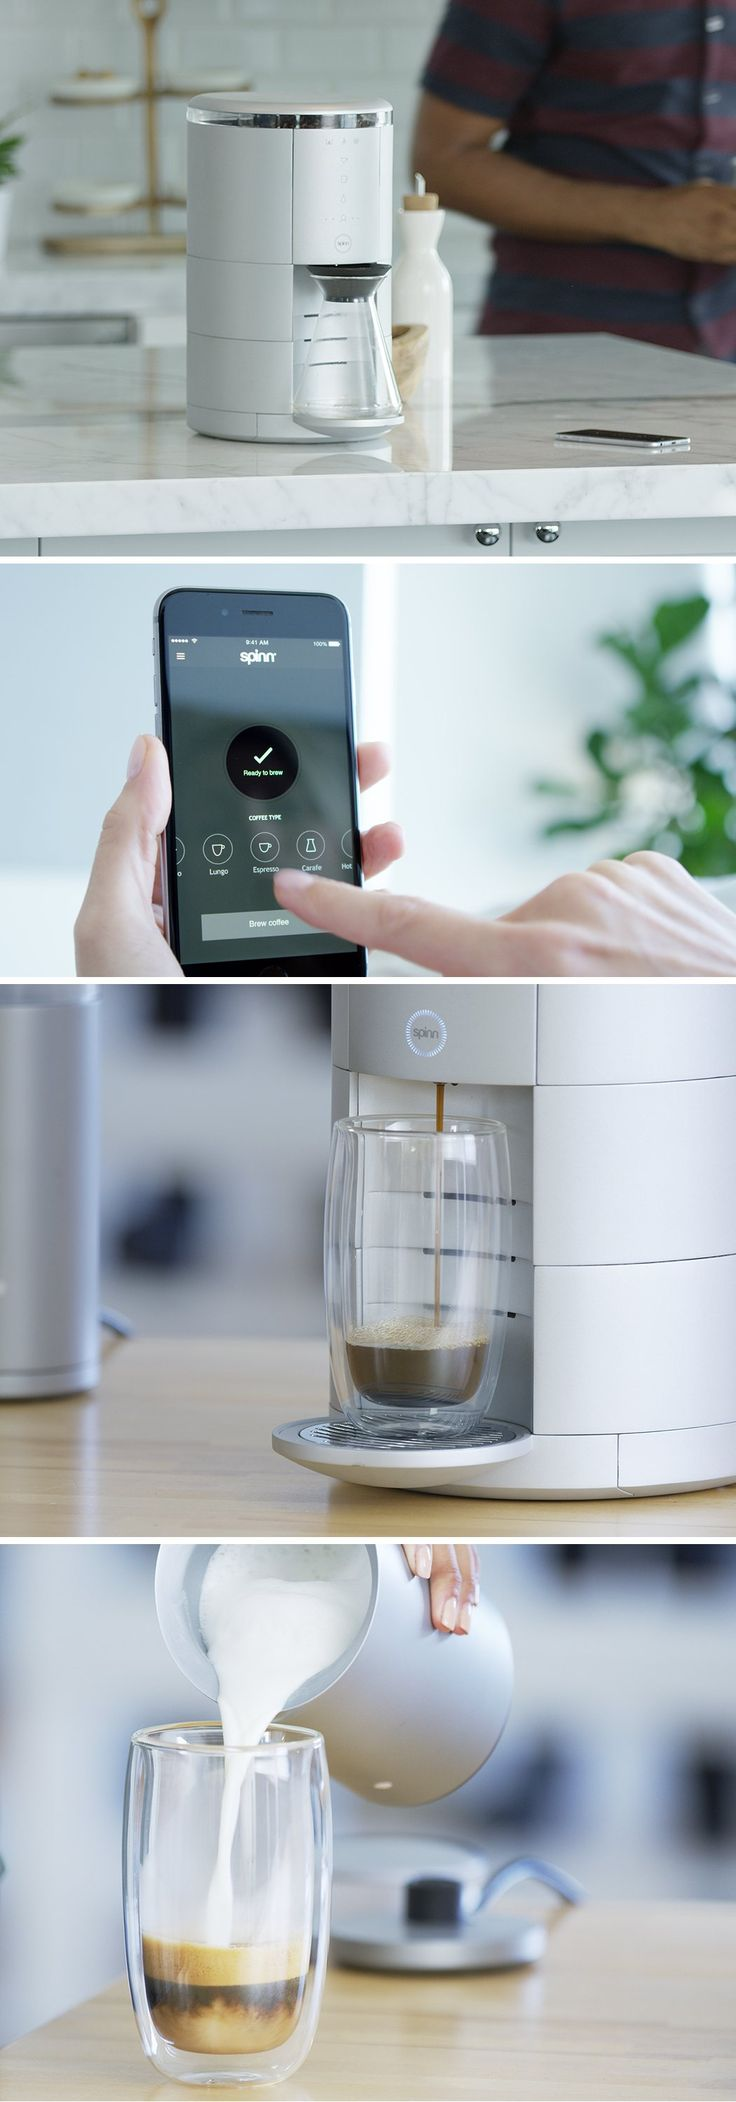 The Spinn coffee machine is designed to bring the entire ceremony of preparing coffee the 'right' way, allowing you to get the best cup of coffee with the simple push of a button right in your home.